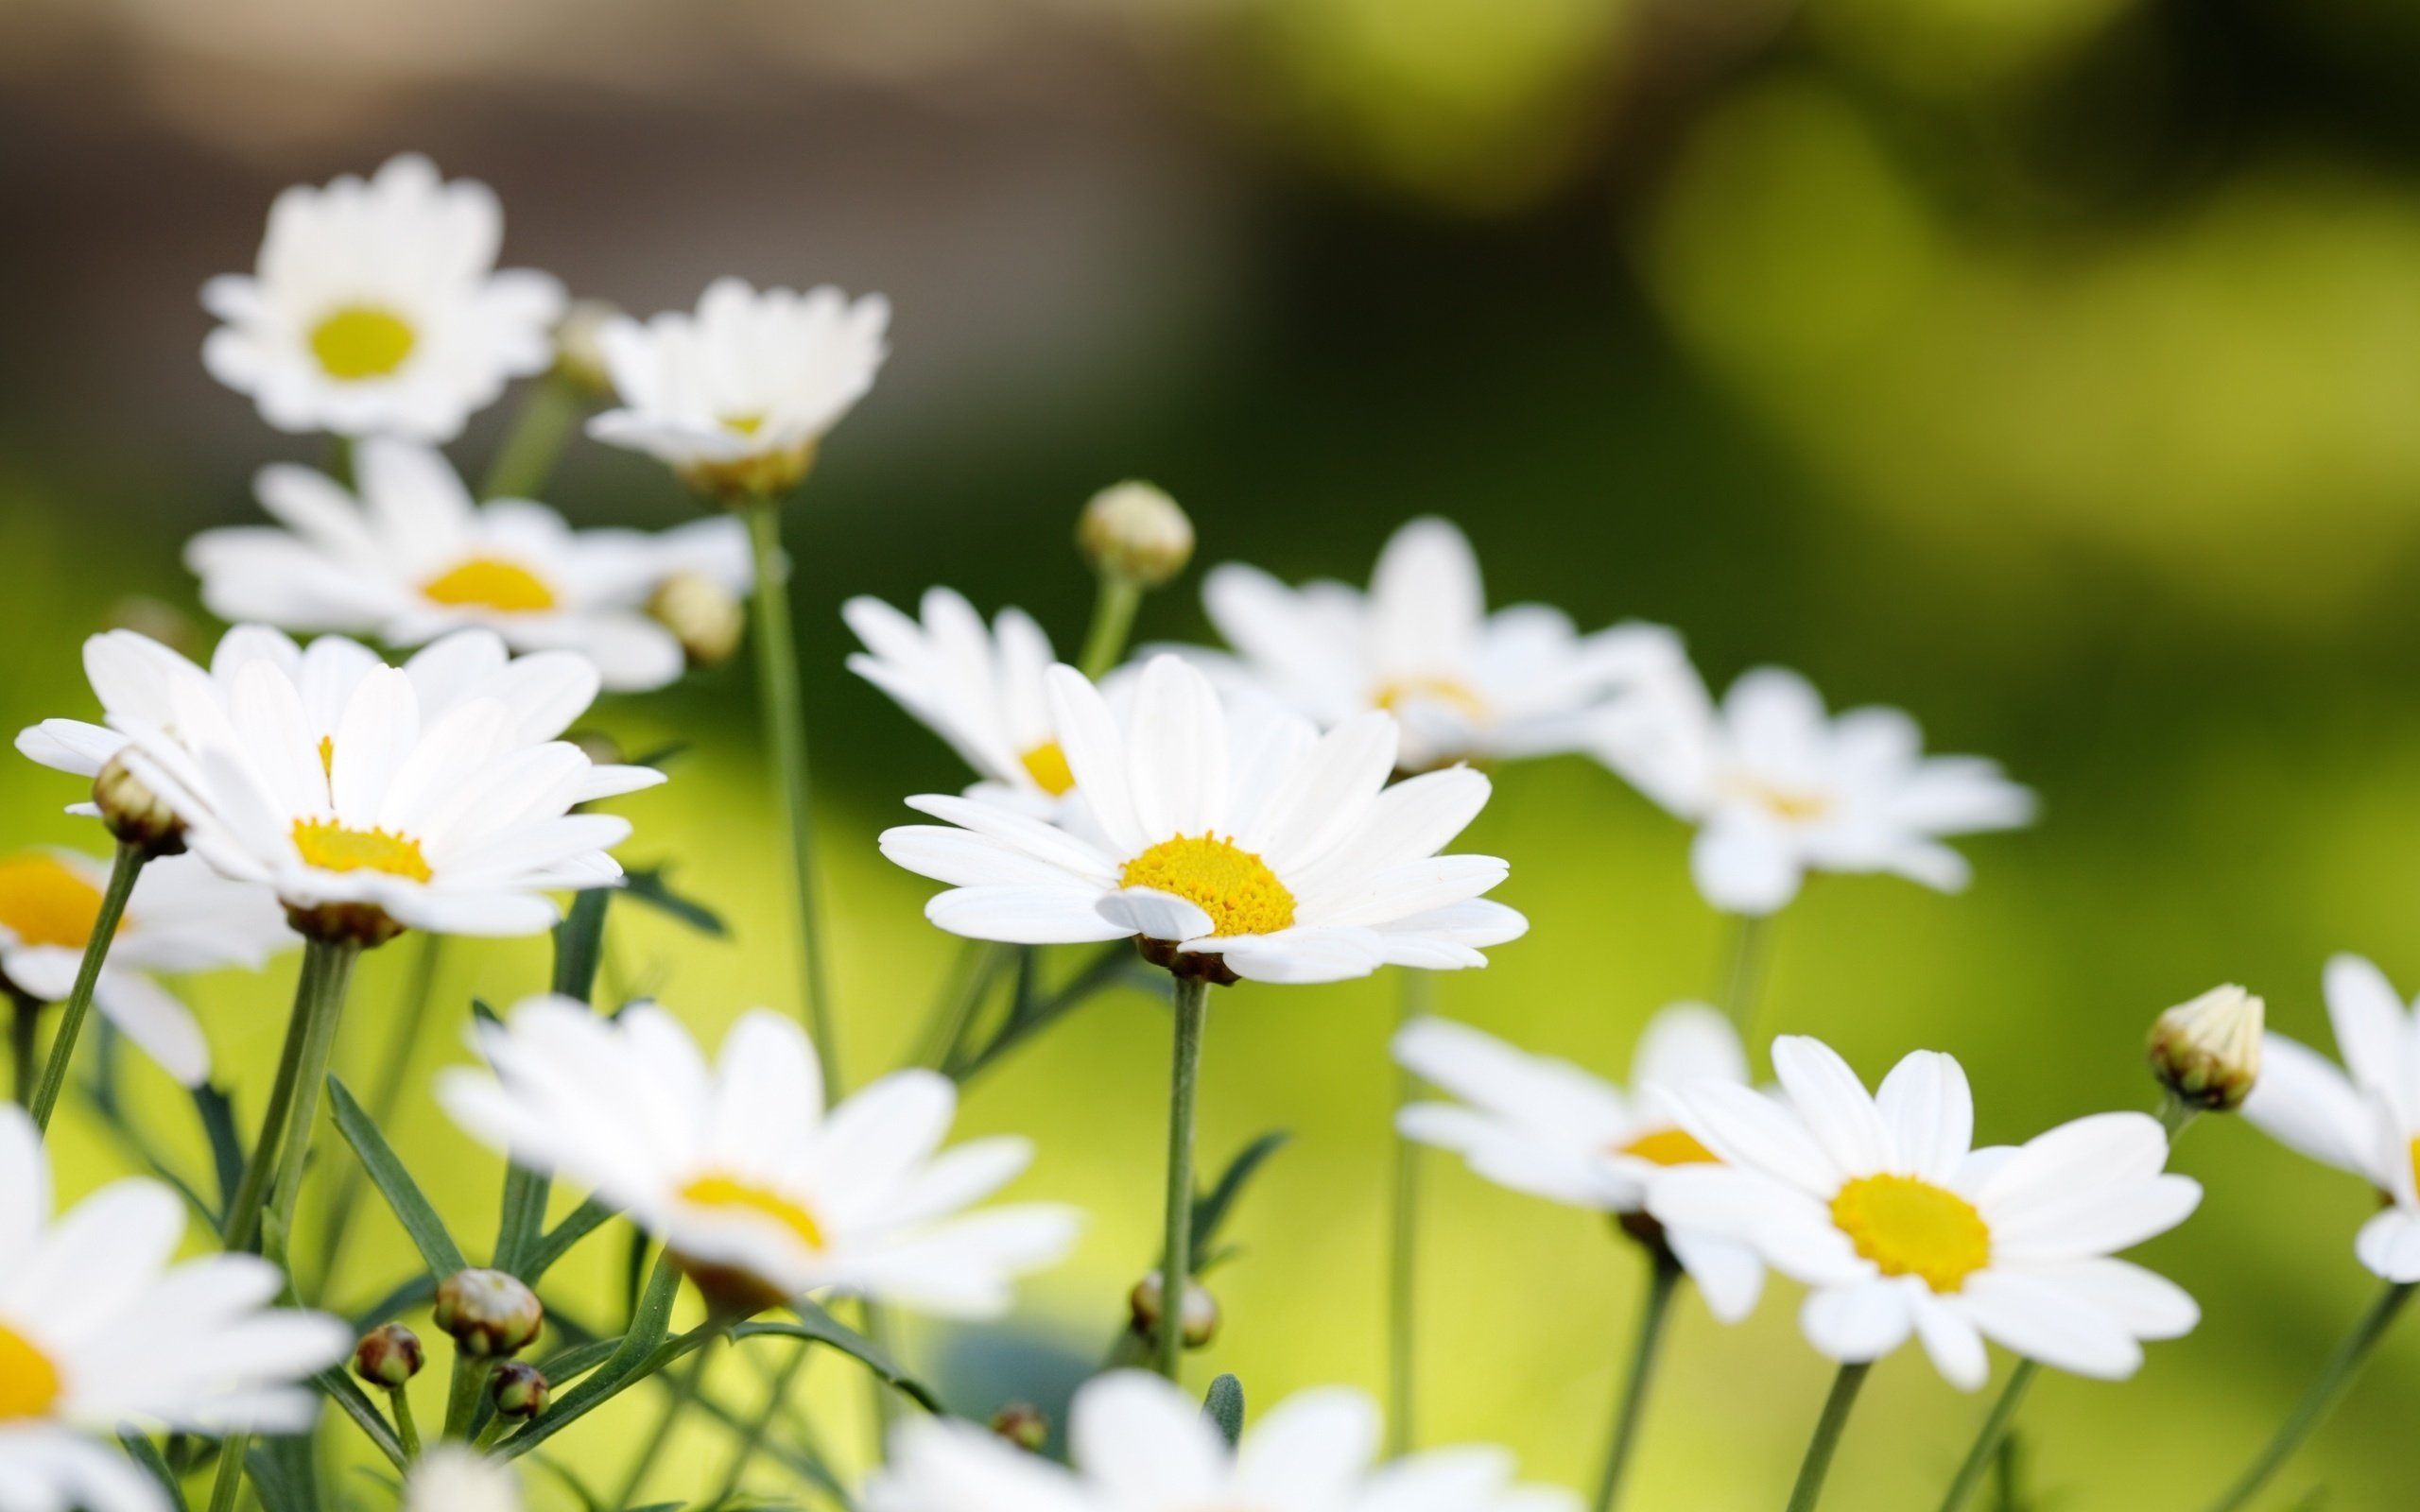 White daisies macro wallpaper - 2560x1600